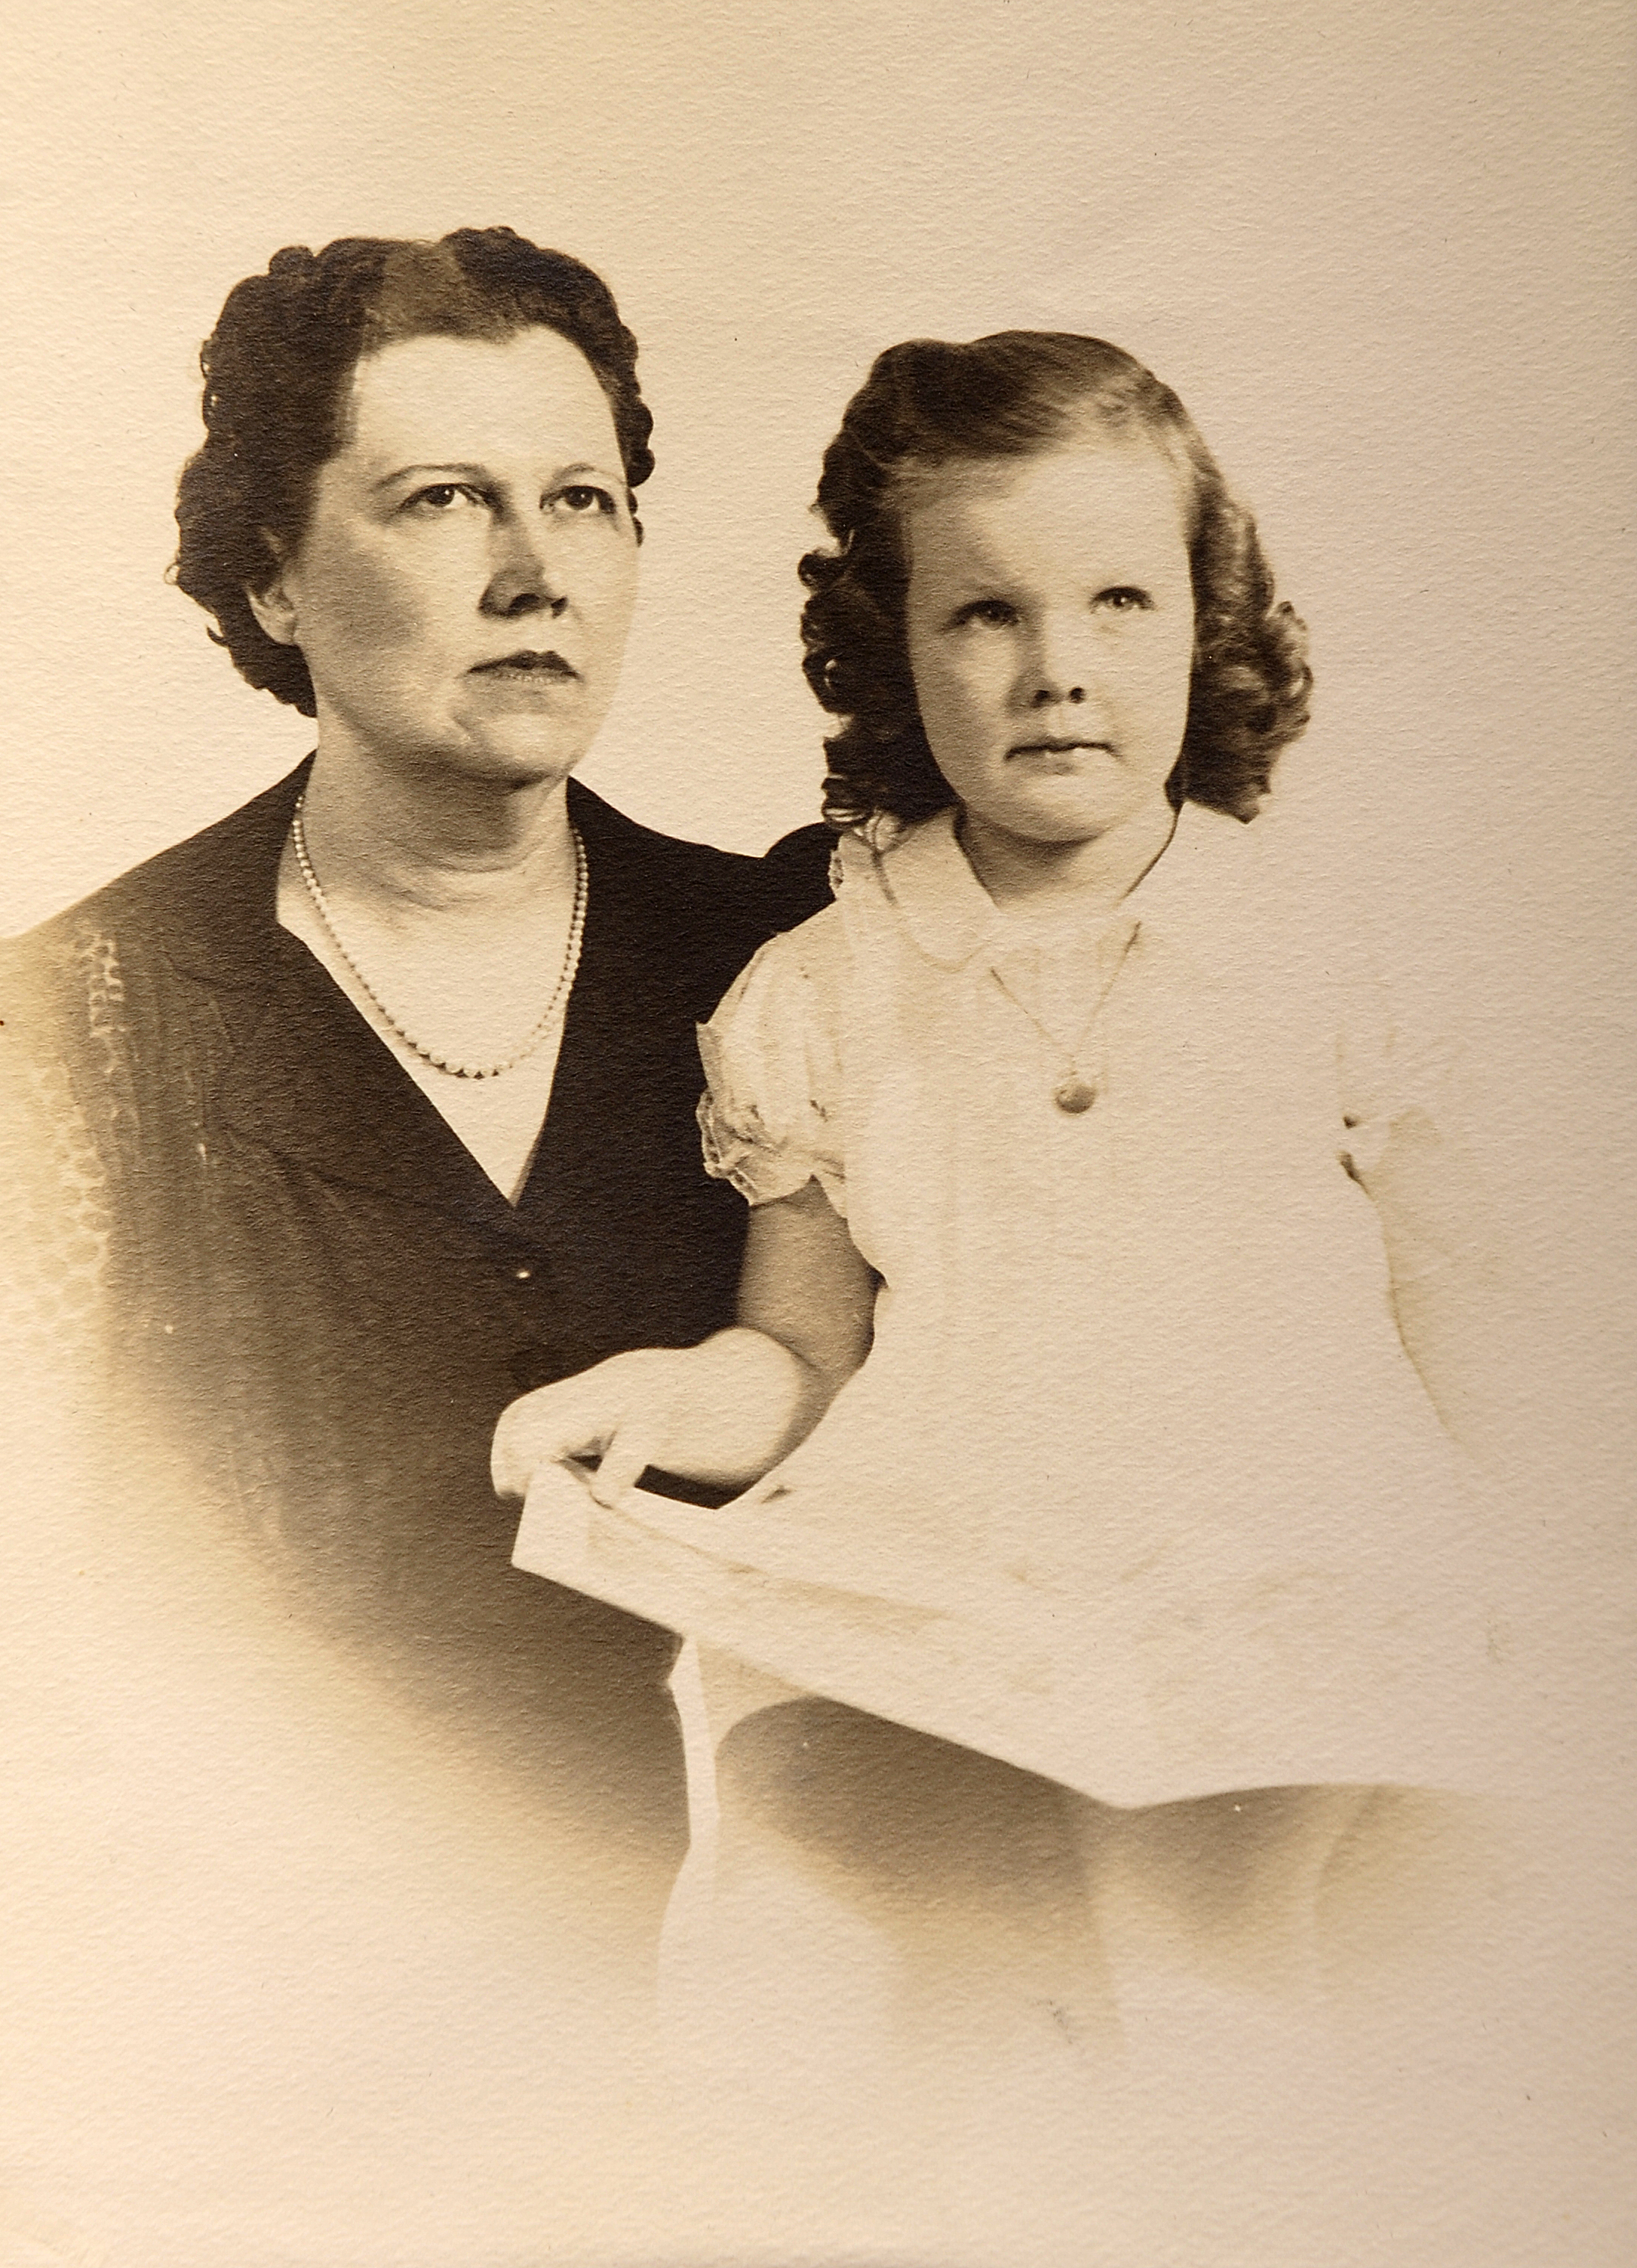 Sally with her mother, the owner of a popular women's clothing store in Wadesboro. As soon as Sally could demonstrate that she had proper etiquette skills and table manners, her mother began taking her on buying trips to New York City.